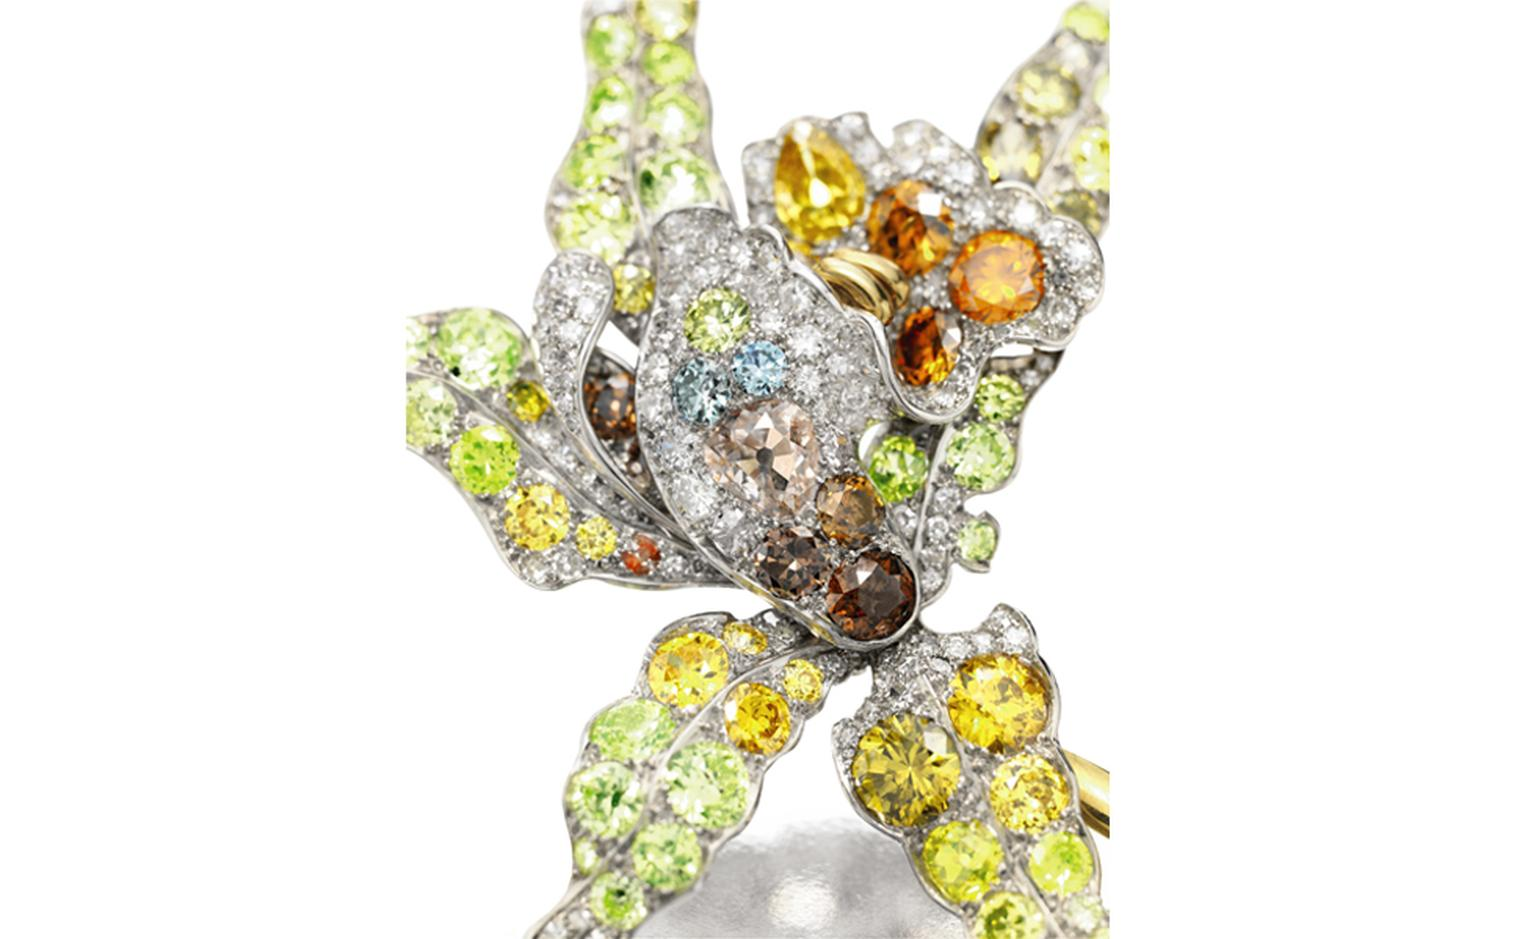 Lot 125, A COLORED DIAMOND FLOWER BROOCH. Christie's Images Ltd. 2010 Estimate $100,000 - 150,000 U.S. dollars.